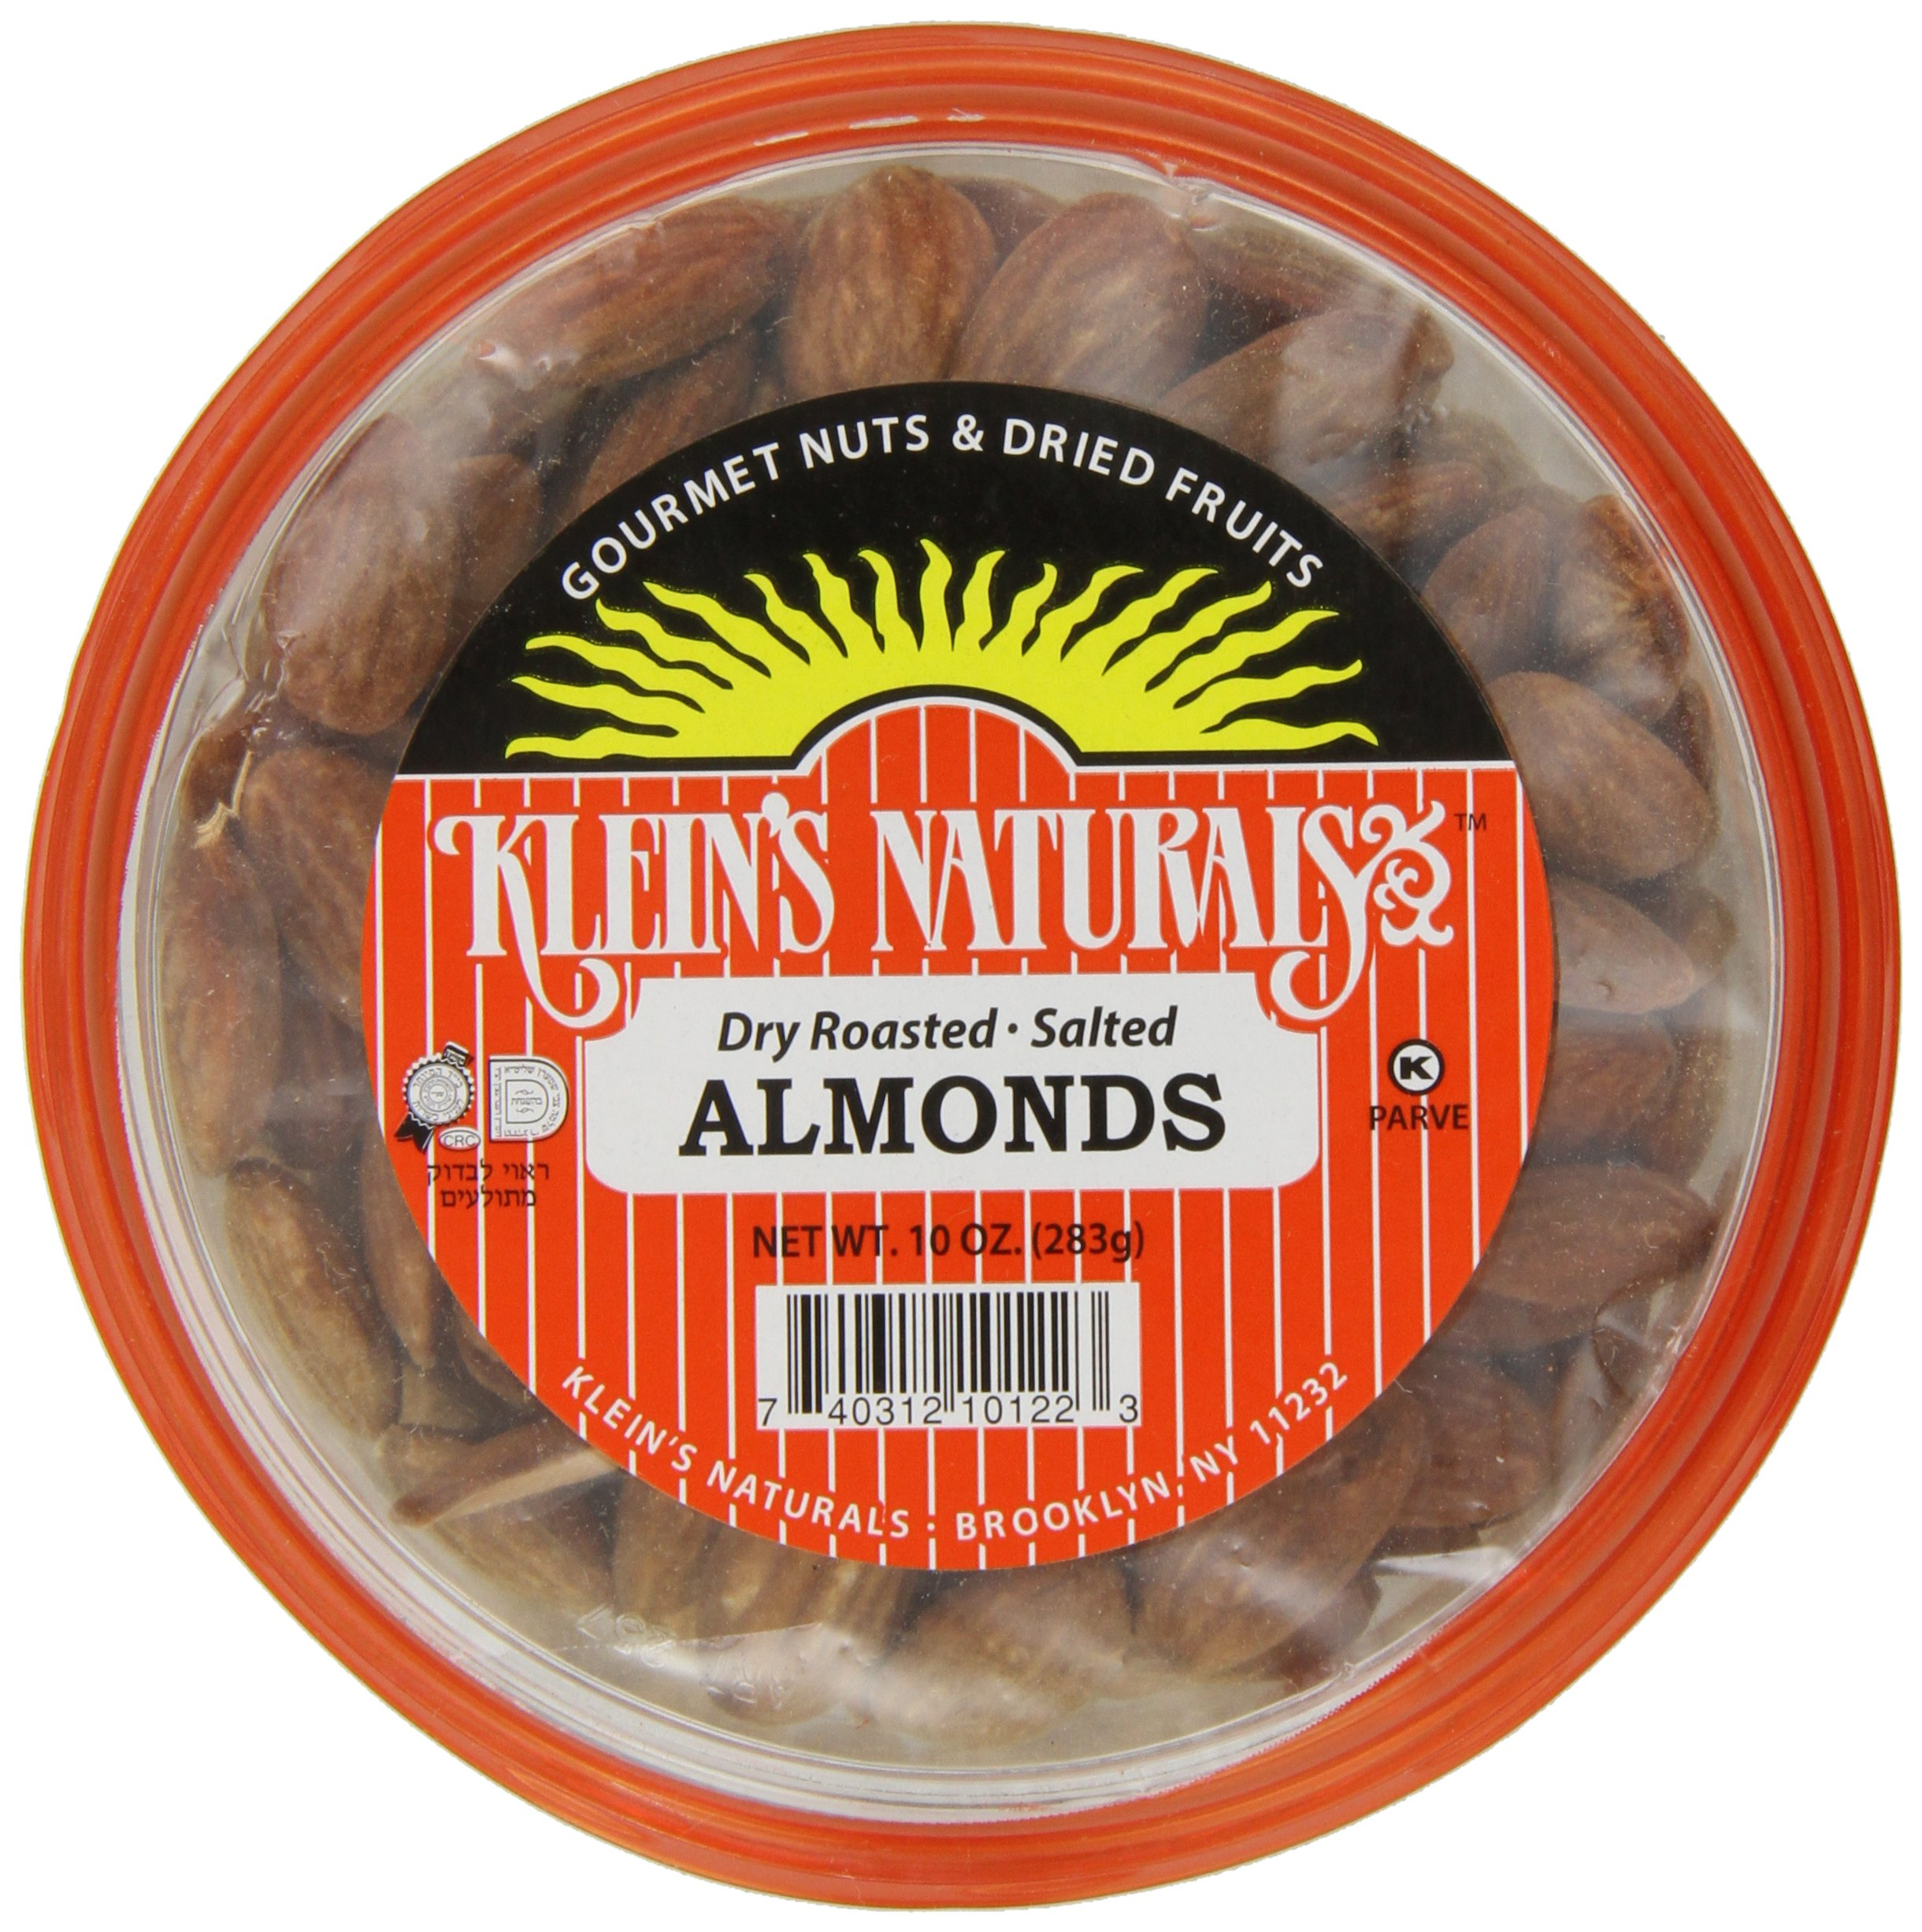 Klein's Naturals Almonds, Dry, Roasted, Salted, Shelled, 10 oz (Pack of 6)